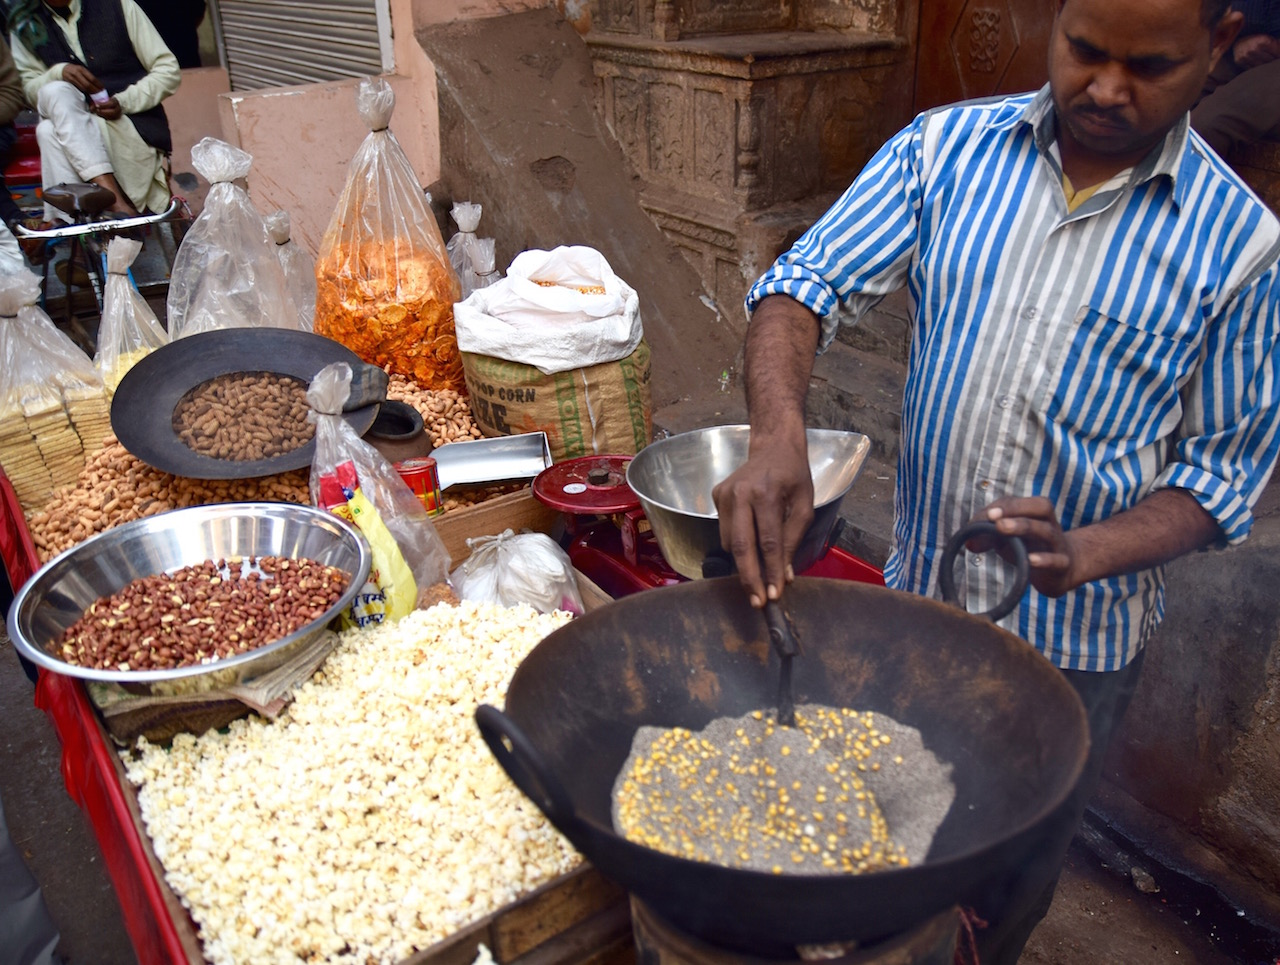 Delhi popcorn in the streets